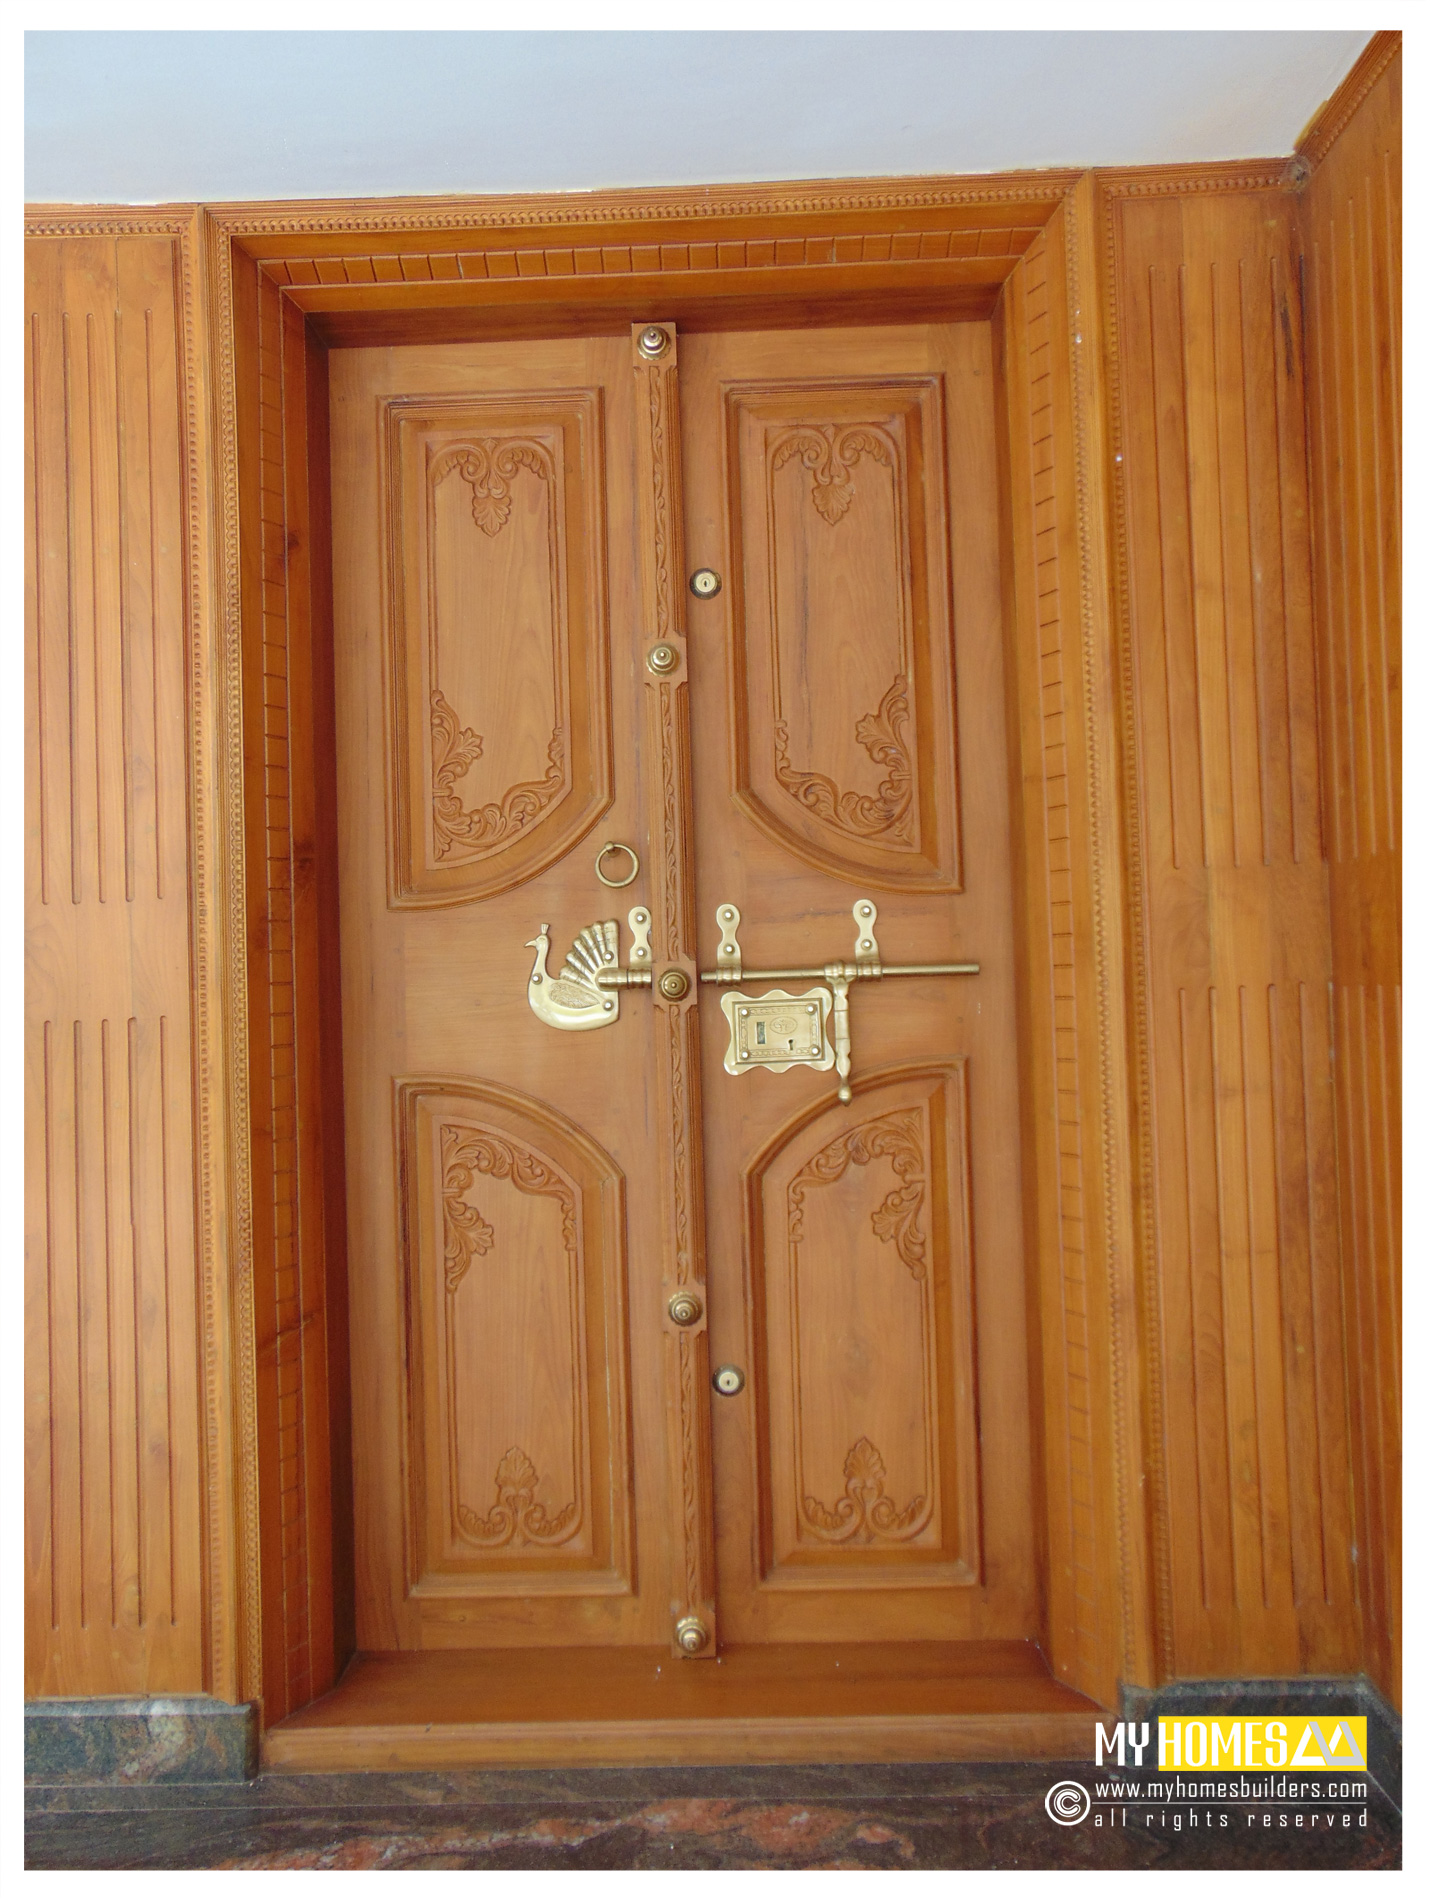 New idea for homes main door designs in kerala india for Door patterns home